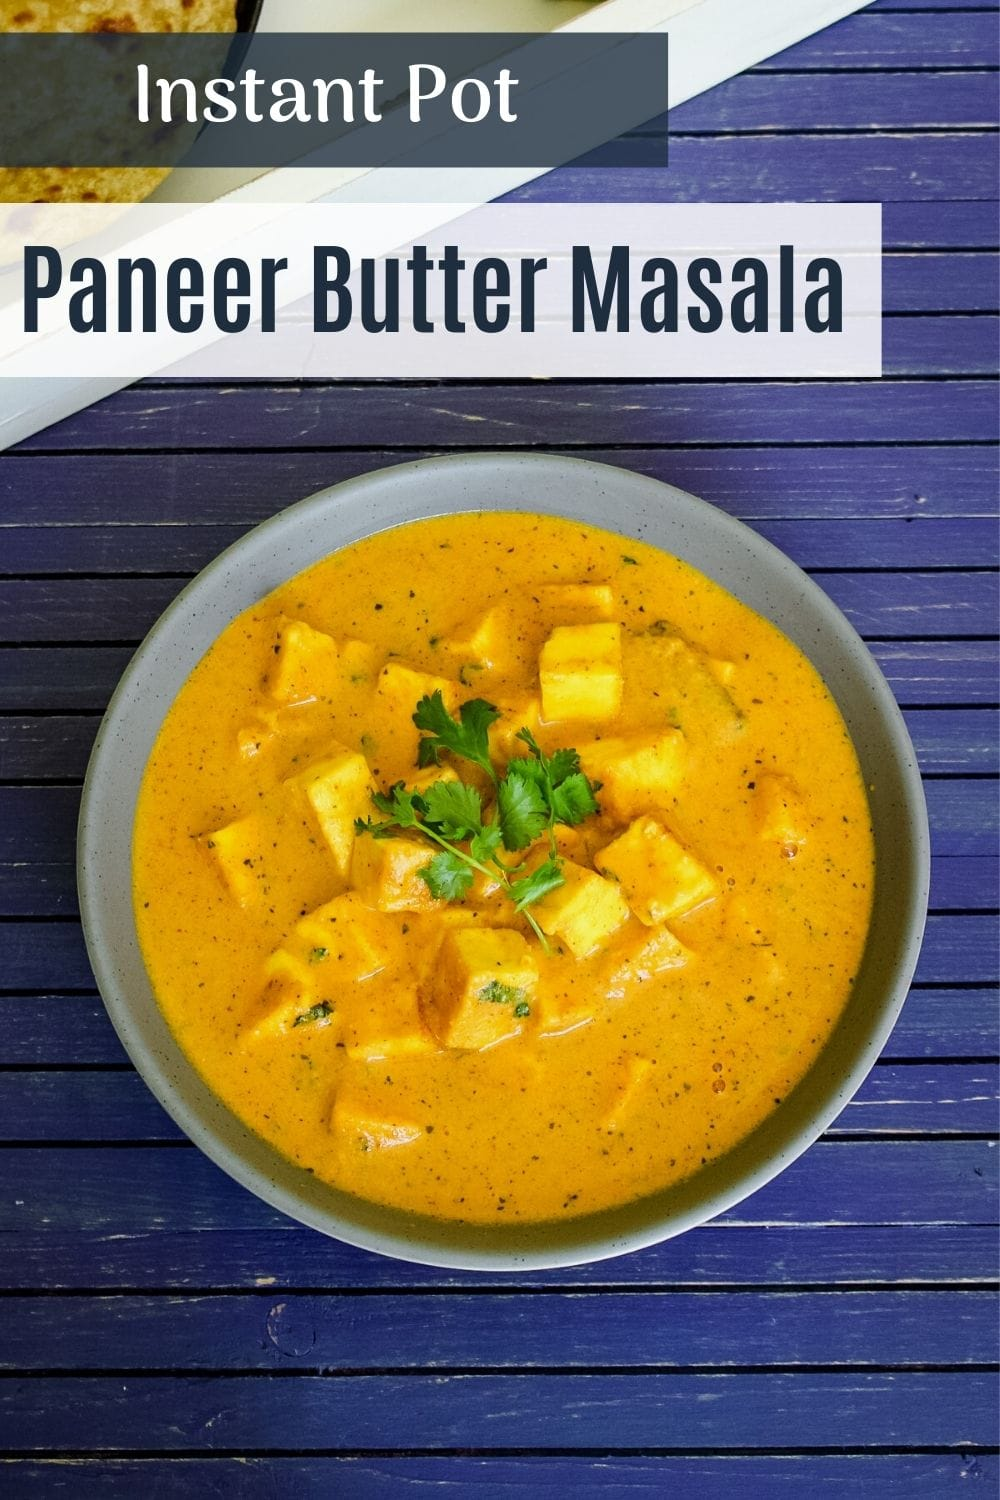 paneer butter masala in a bowl with garnish of cilantro with text on the image of pinterest